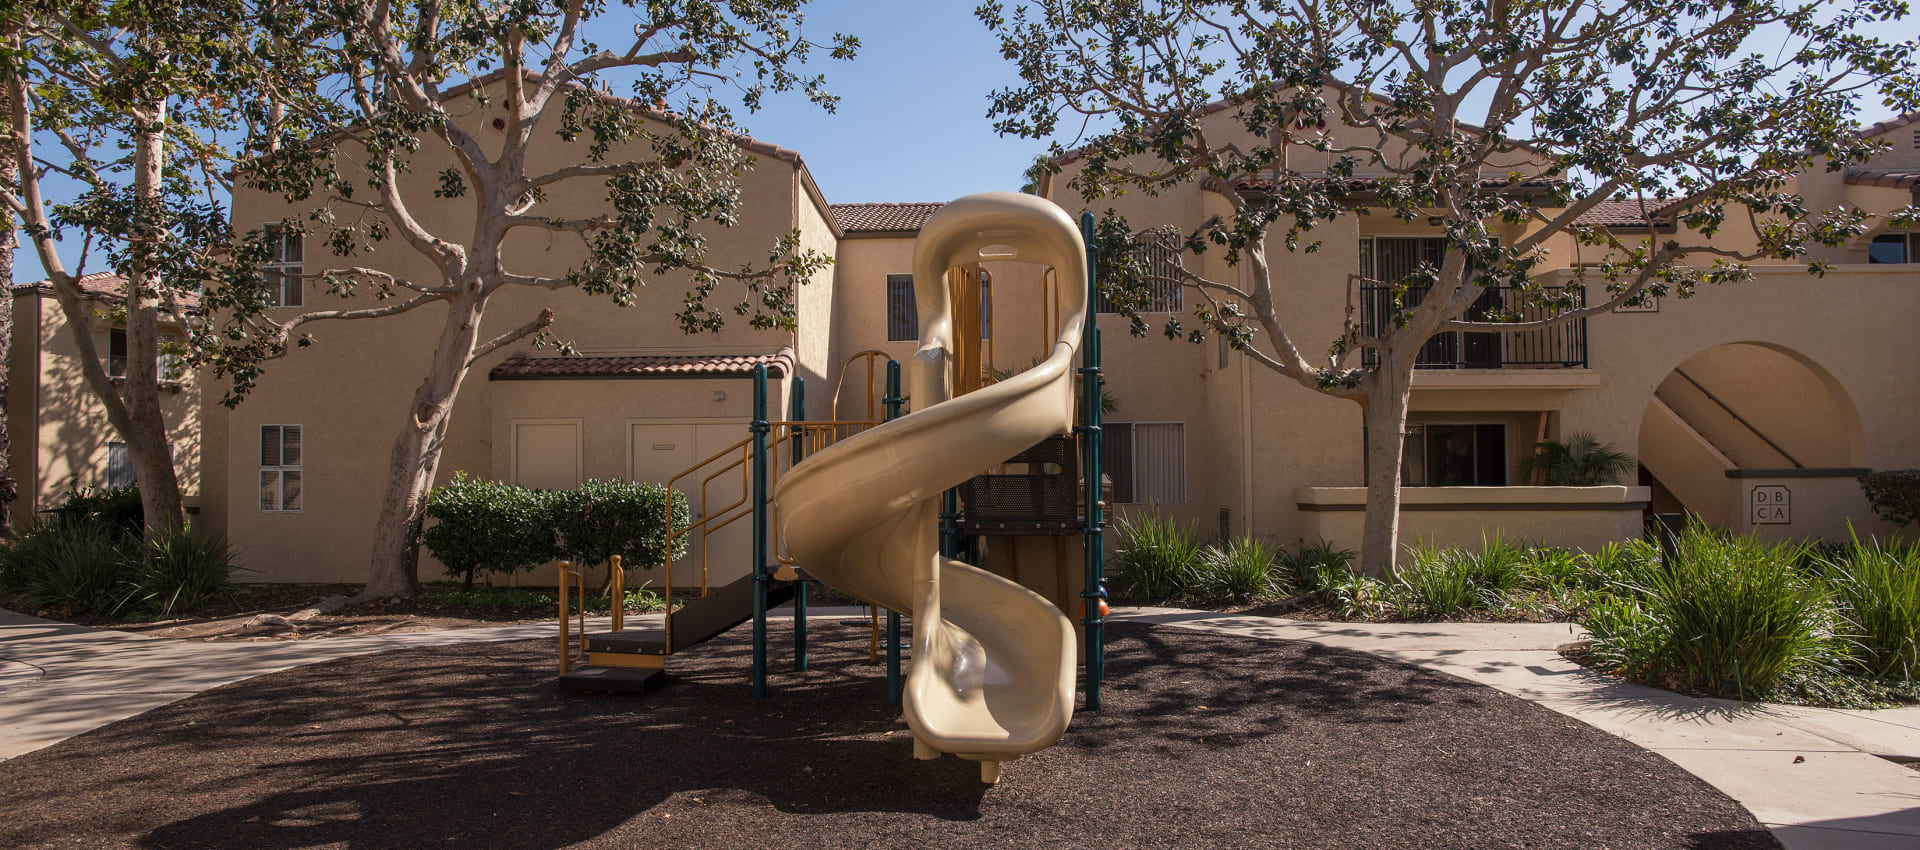 Playground at Shadow Ridge Apartment Homes in Simi Valley